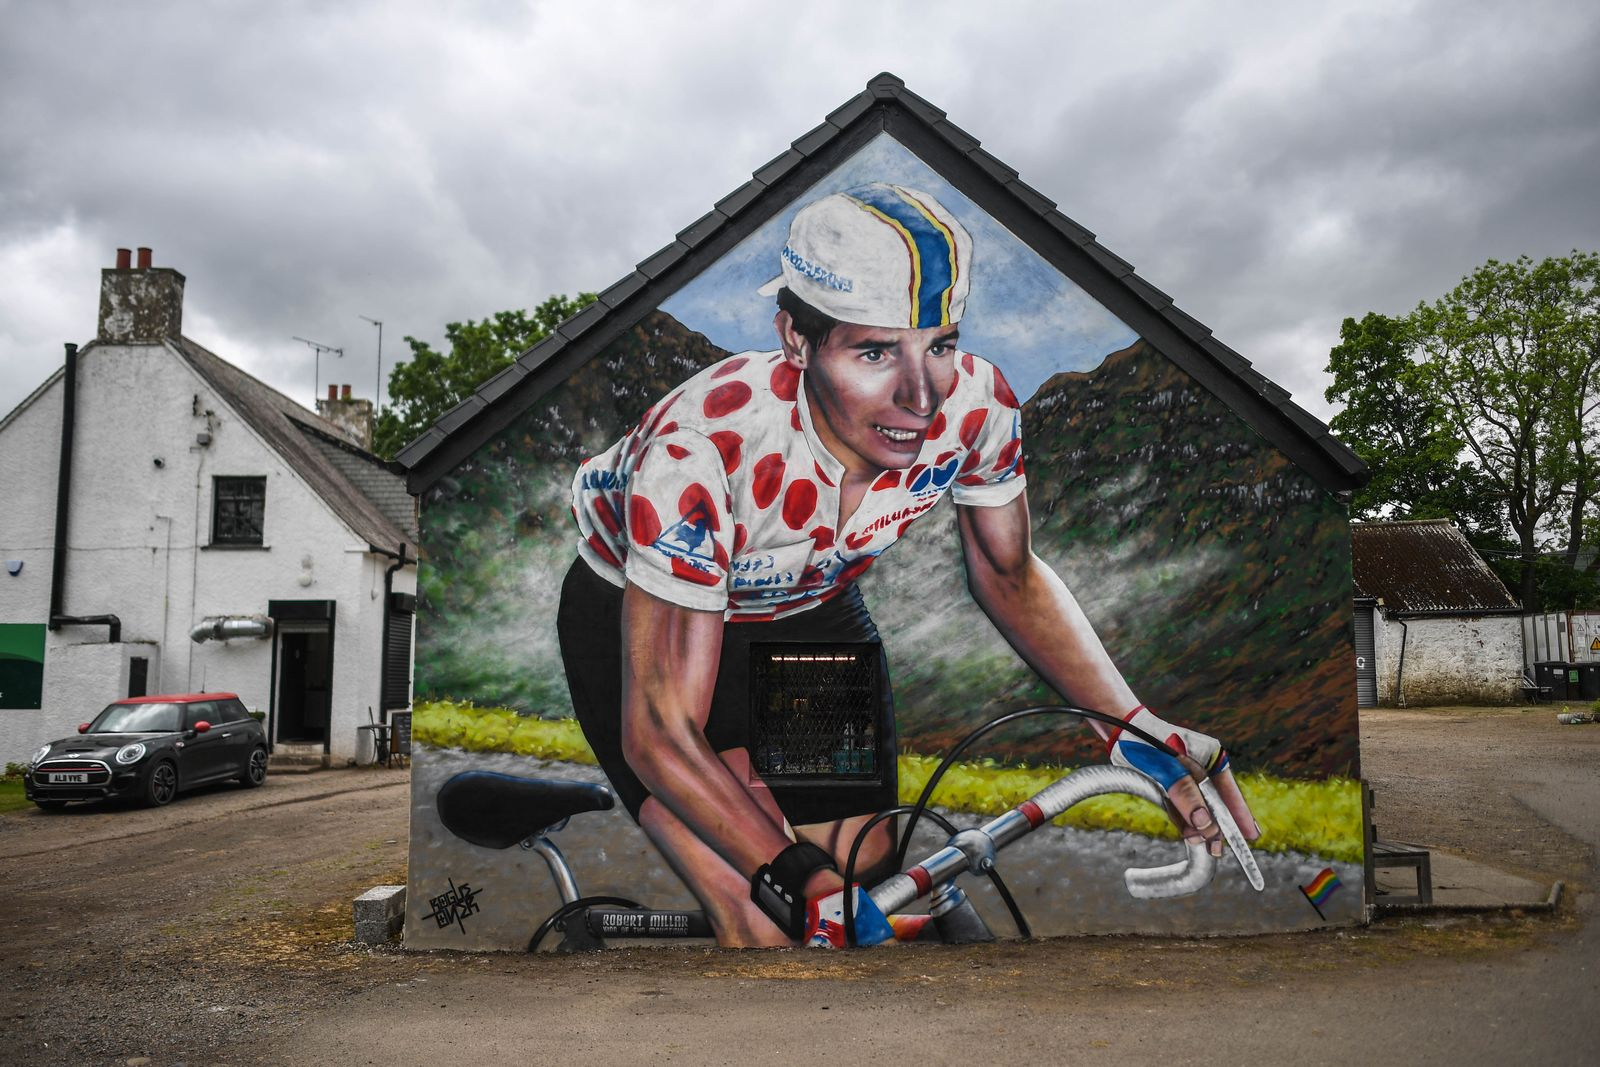 Mural Of Scotland Cycling Legend Robert Millar Unveiled On The Crow Road